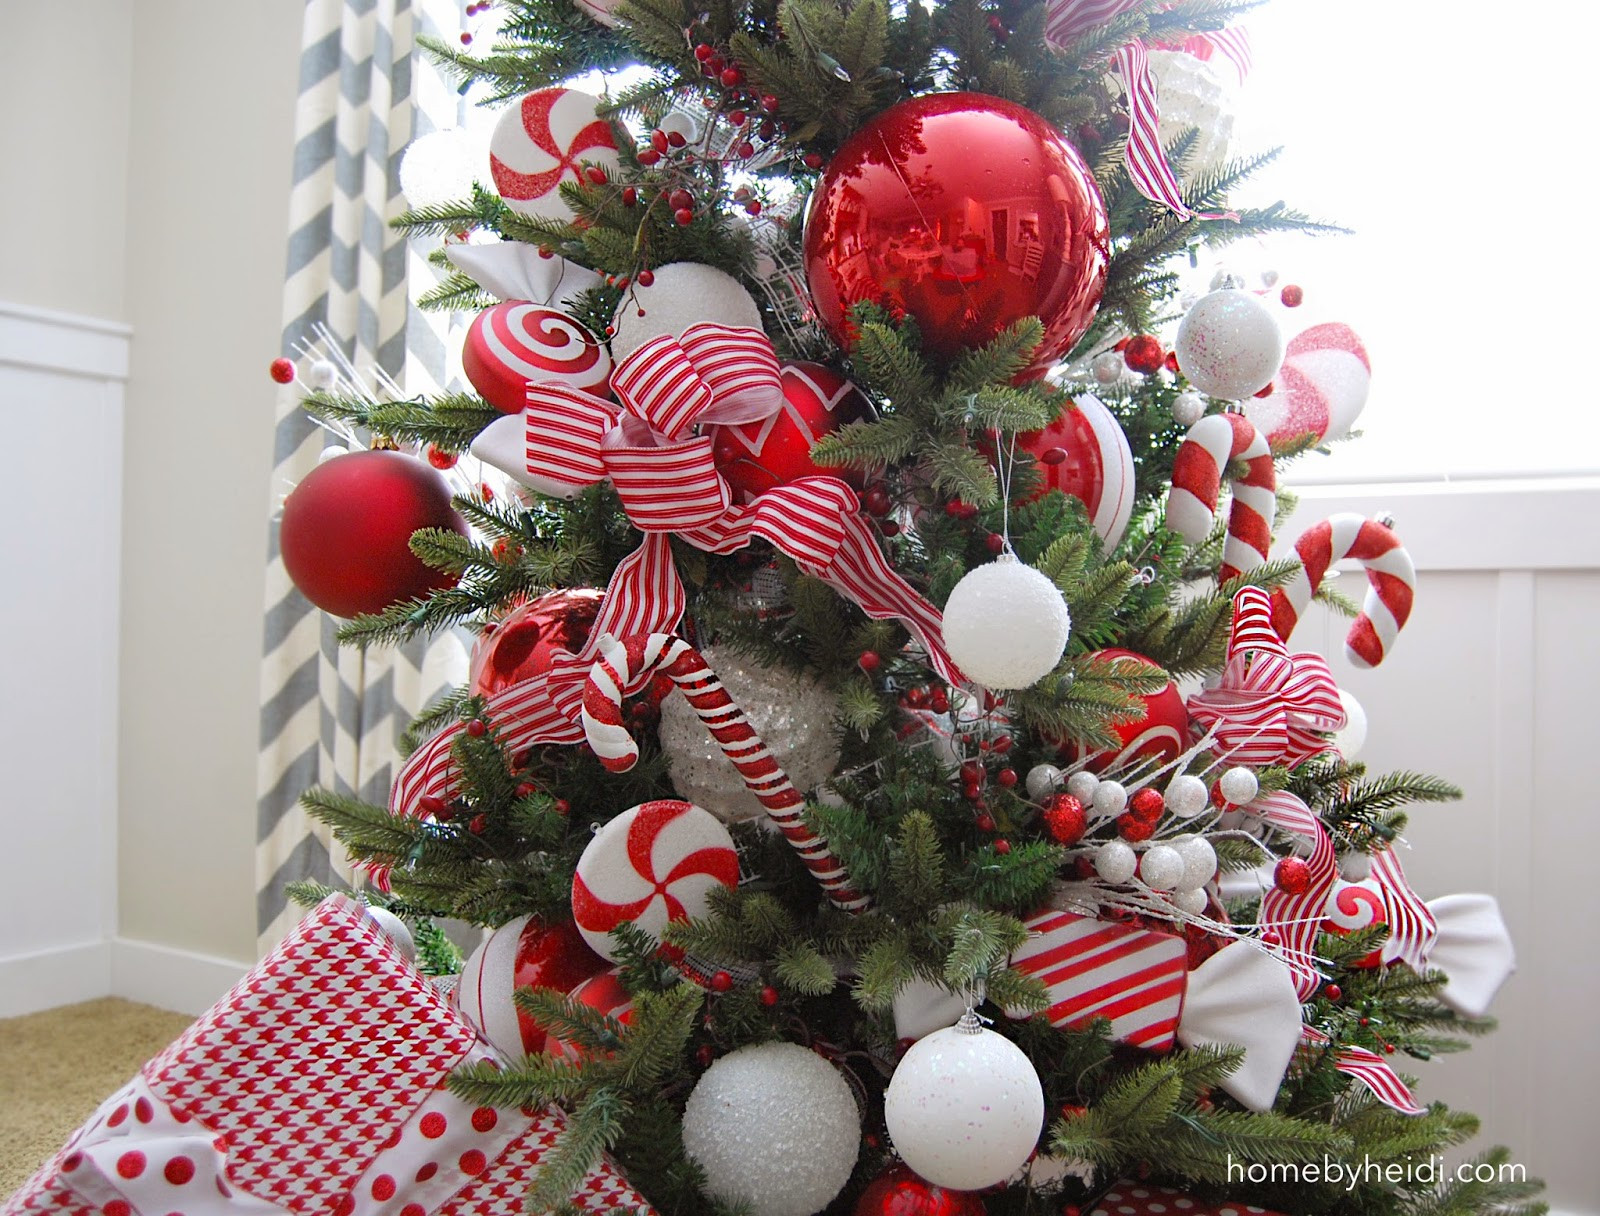 Candy Cane Christmas Tree  Home By Heidi Candy Cane Christmas Tree